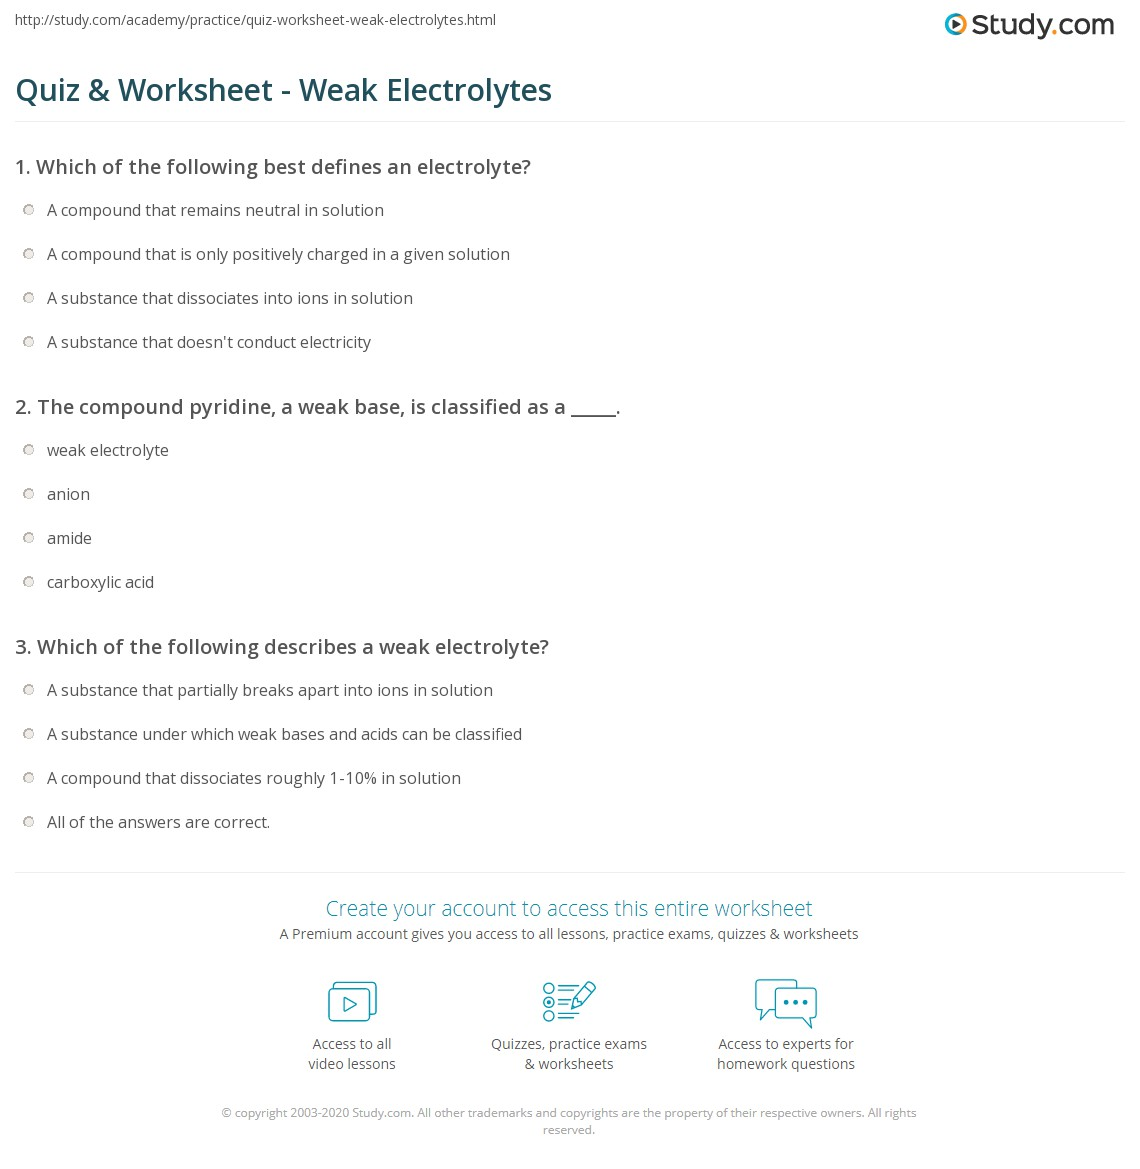 Quiz Worksheet Weak Electrolytes Study